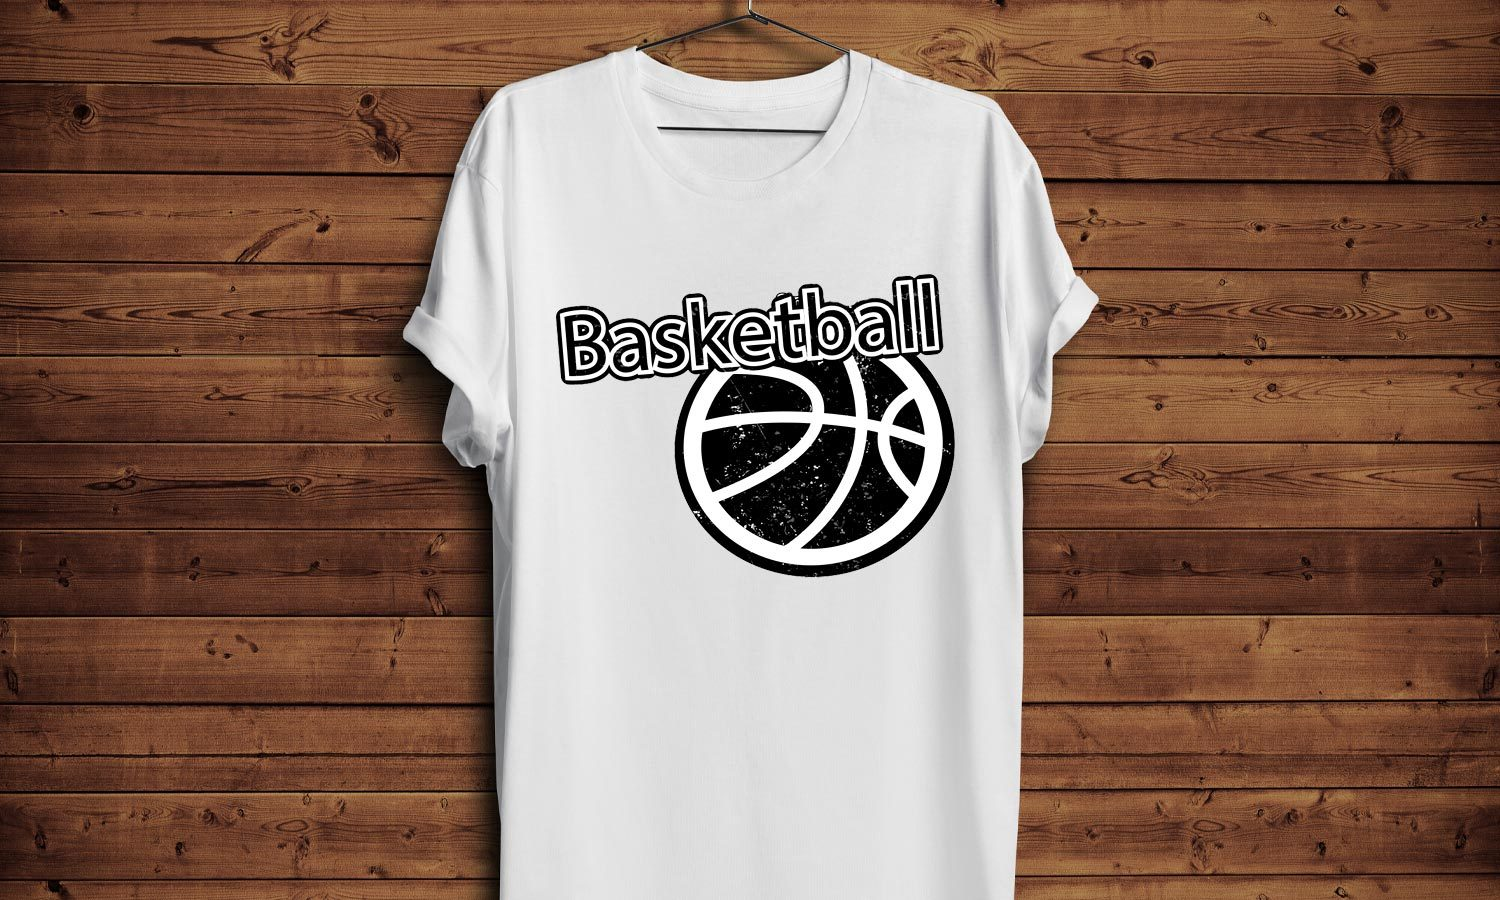 Basketball - Printed T-Shirt for Men, Women and Kids - TS239